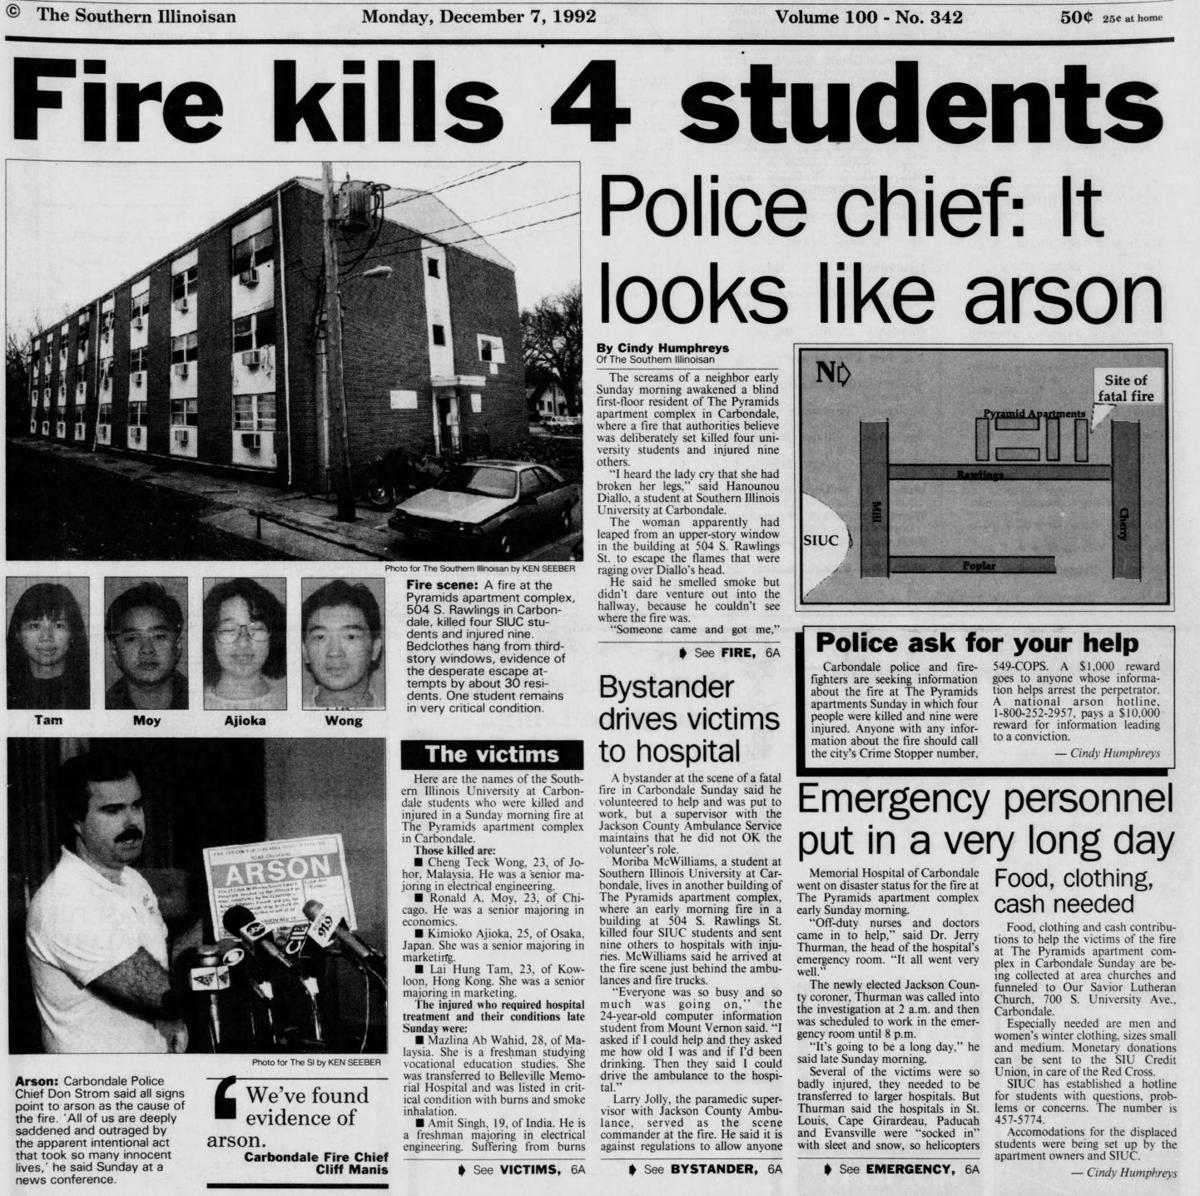 25 Years Ago An Arson At Pyramid Apartments Killed 5 Students The Ken 1 12 By Strom Case Remains Unsolved Carbondale